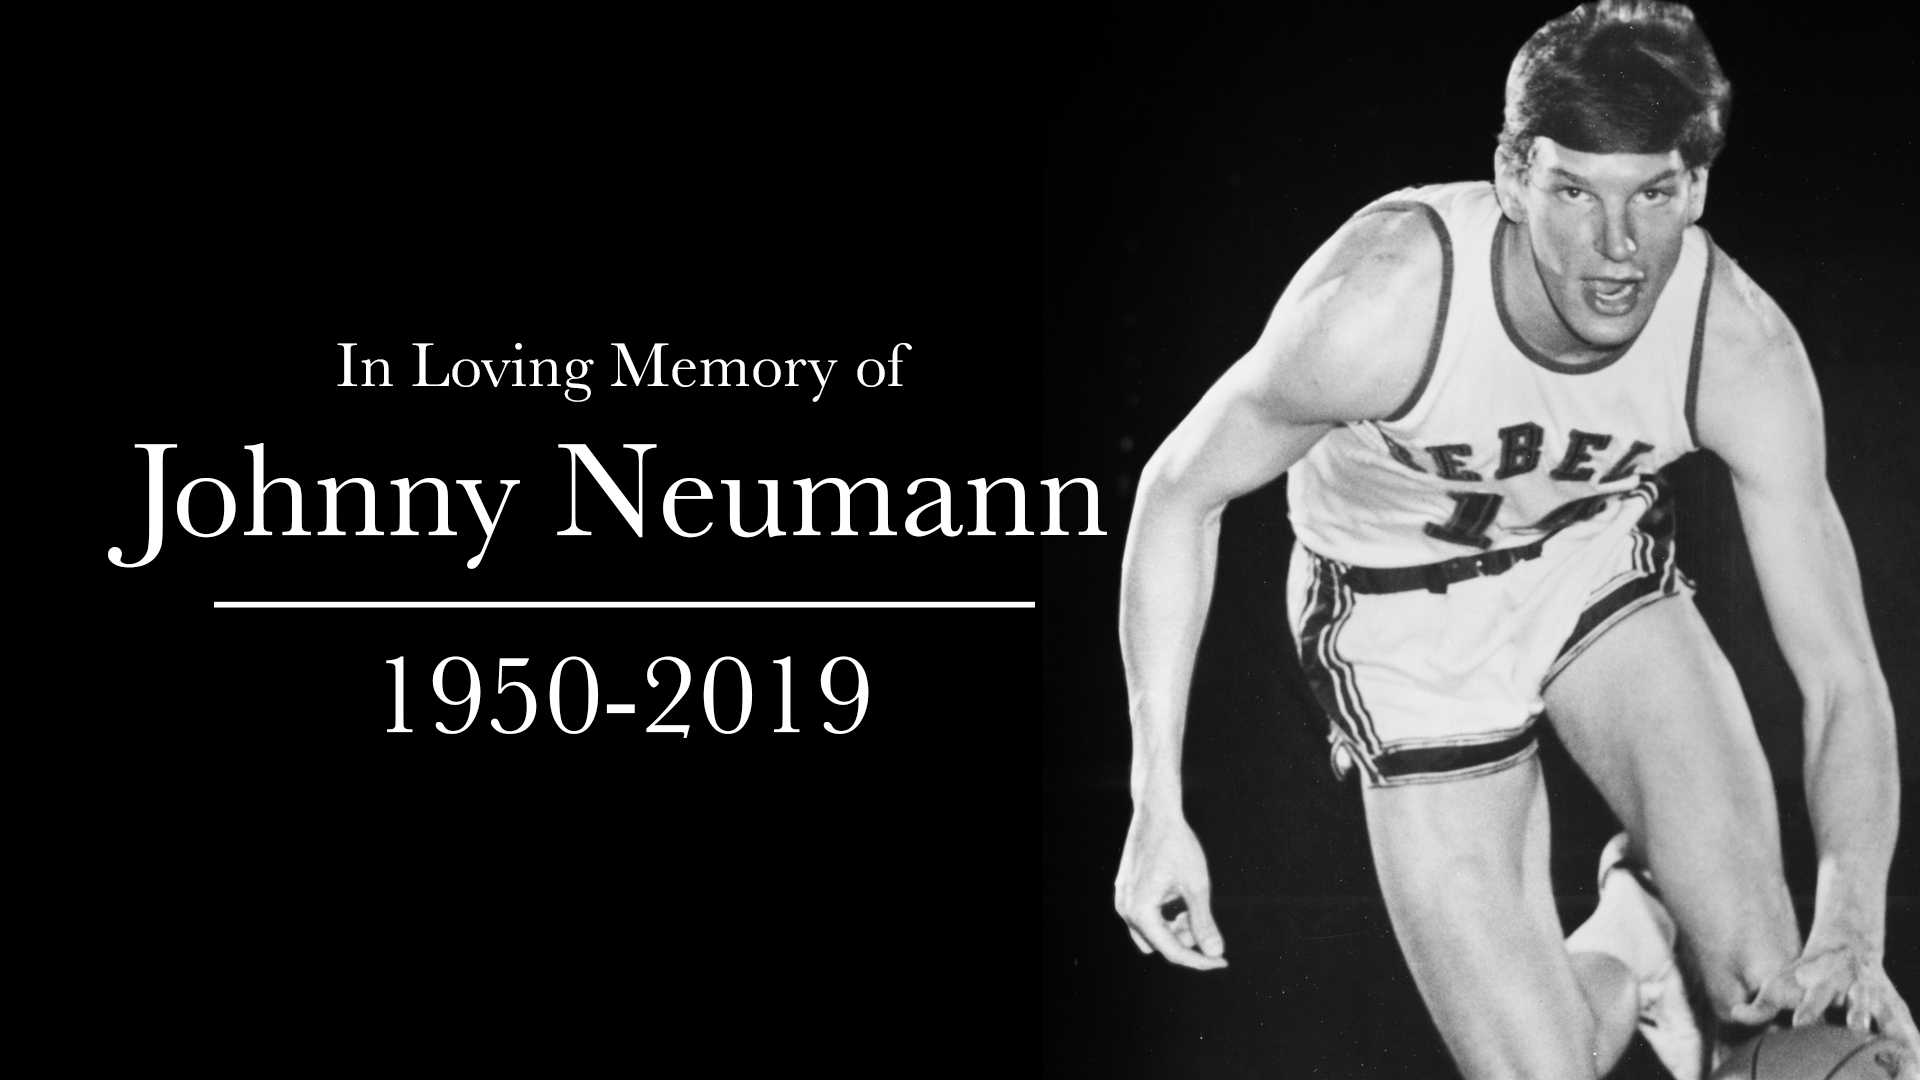 bfb9f3a6fa923a Ole Miss Basketball Legend Johnny Neumann Passes Away - Ole Miss ...